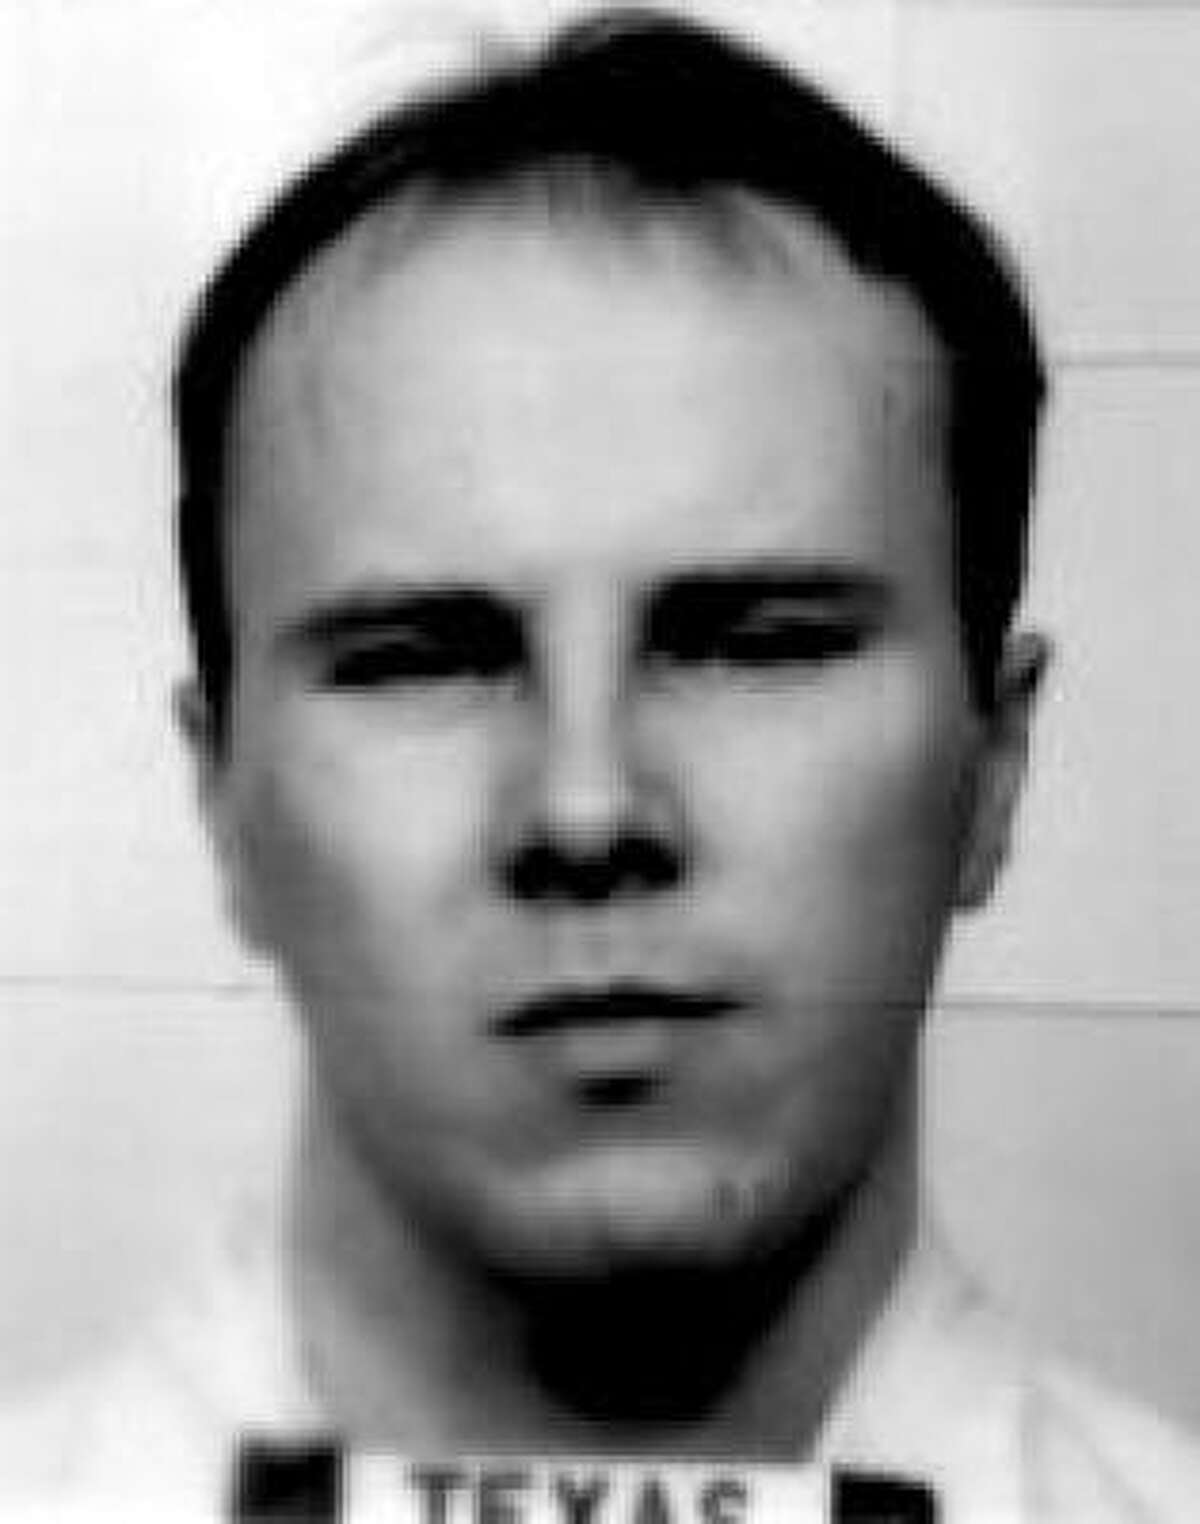 Martin Draughon was sentenced to death in 1987 in the shooting death of a man after a robbery.